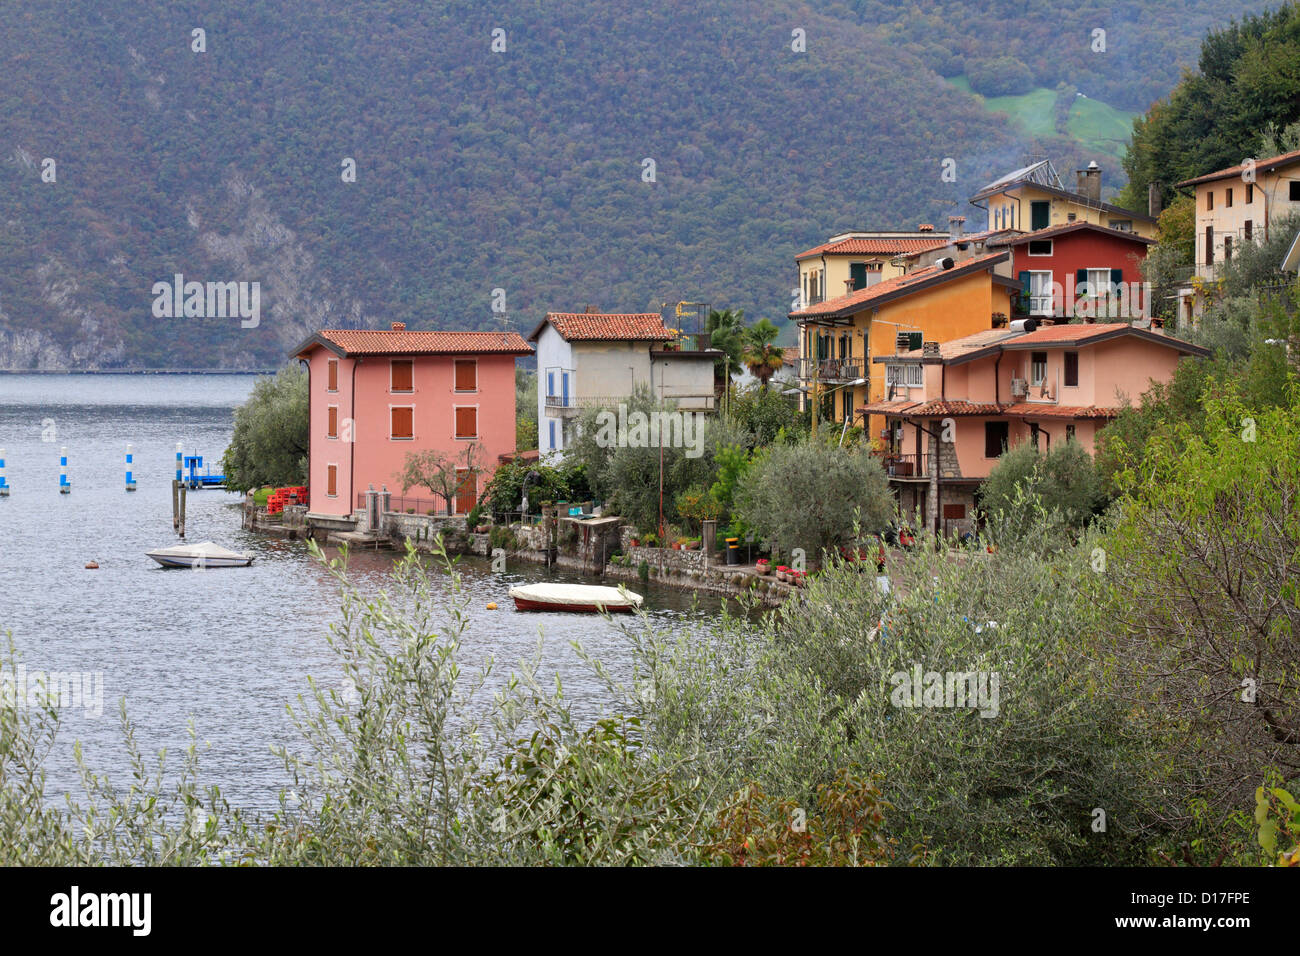 Colourful houses in Monte Isola on Lake Iseo, near Bergamo, Lombardy, Italy, Europe. - Stock Image